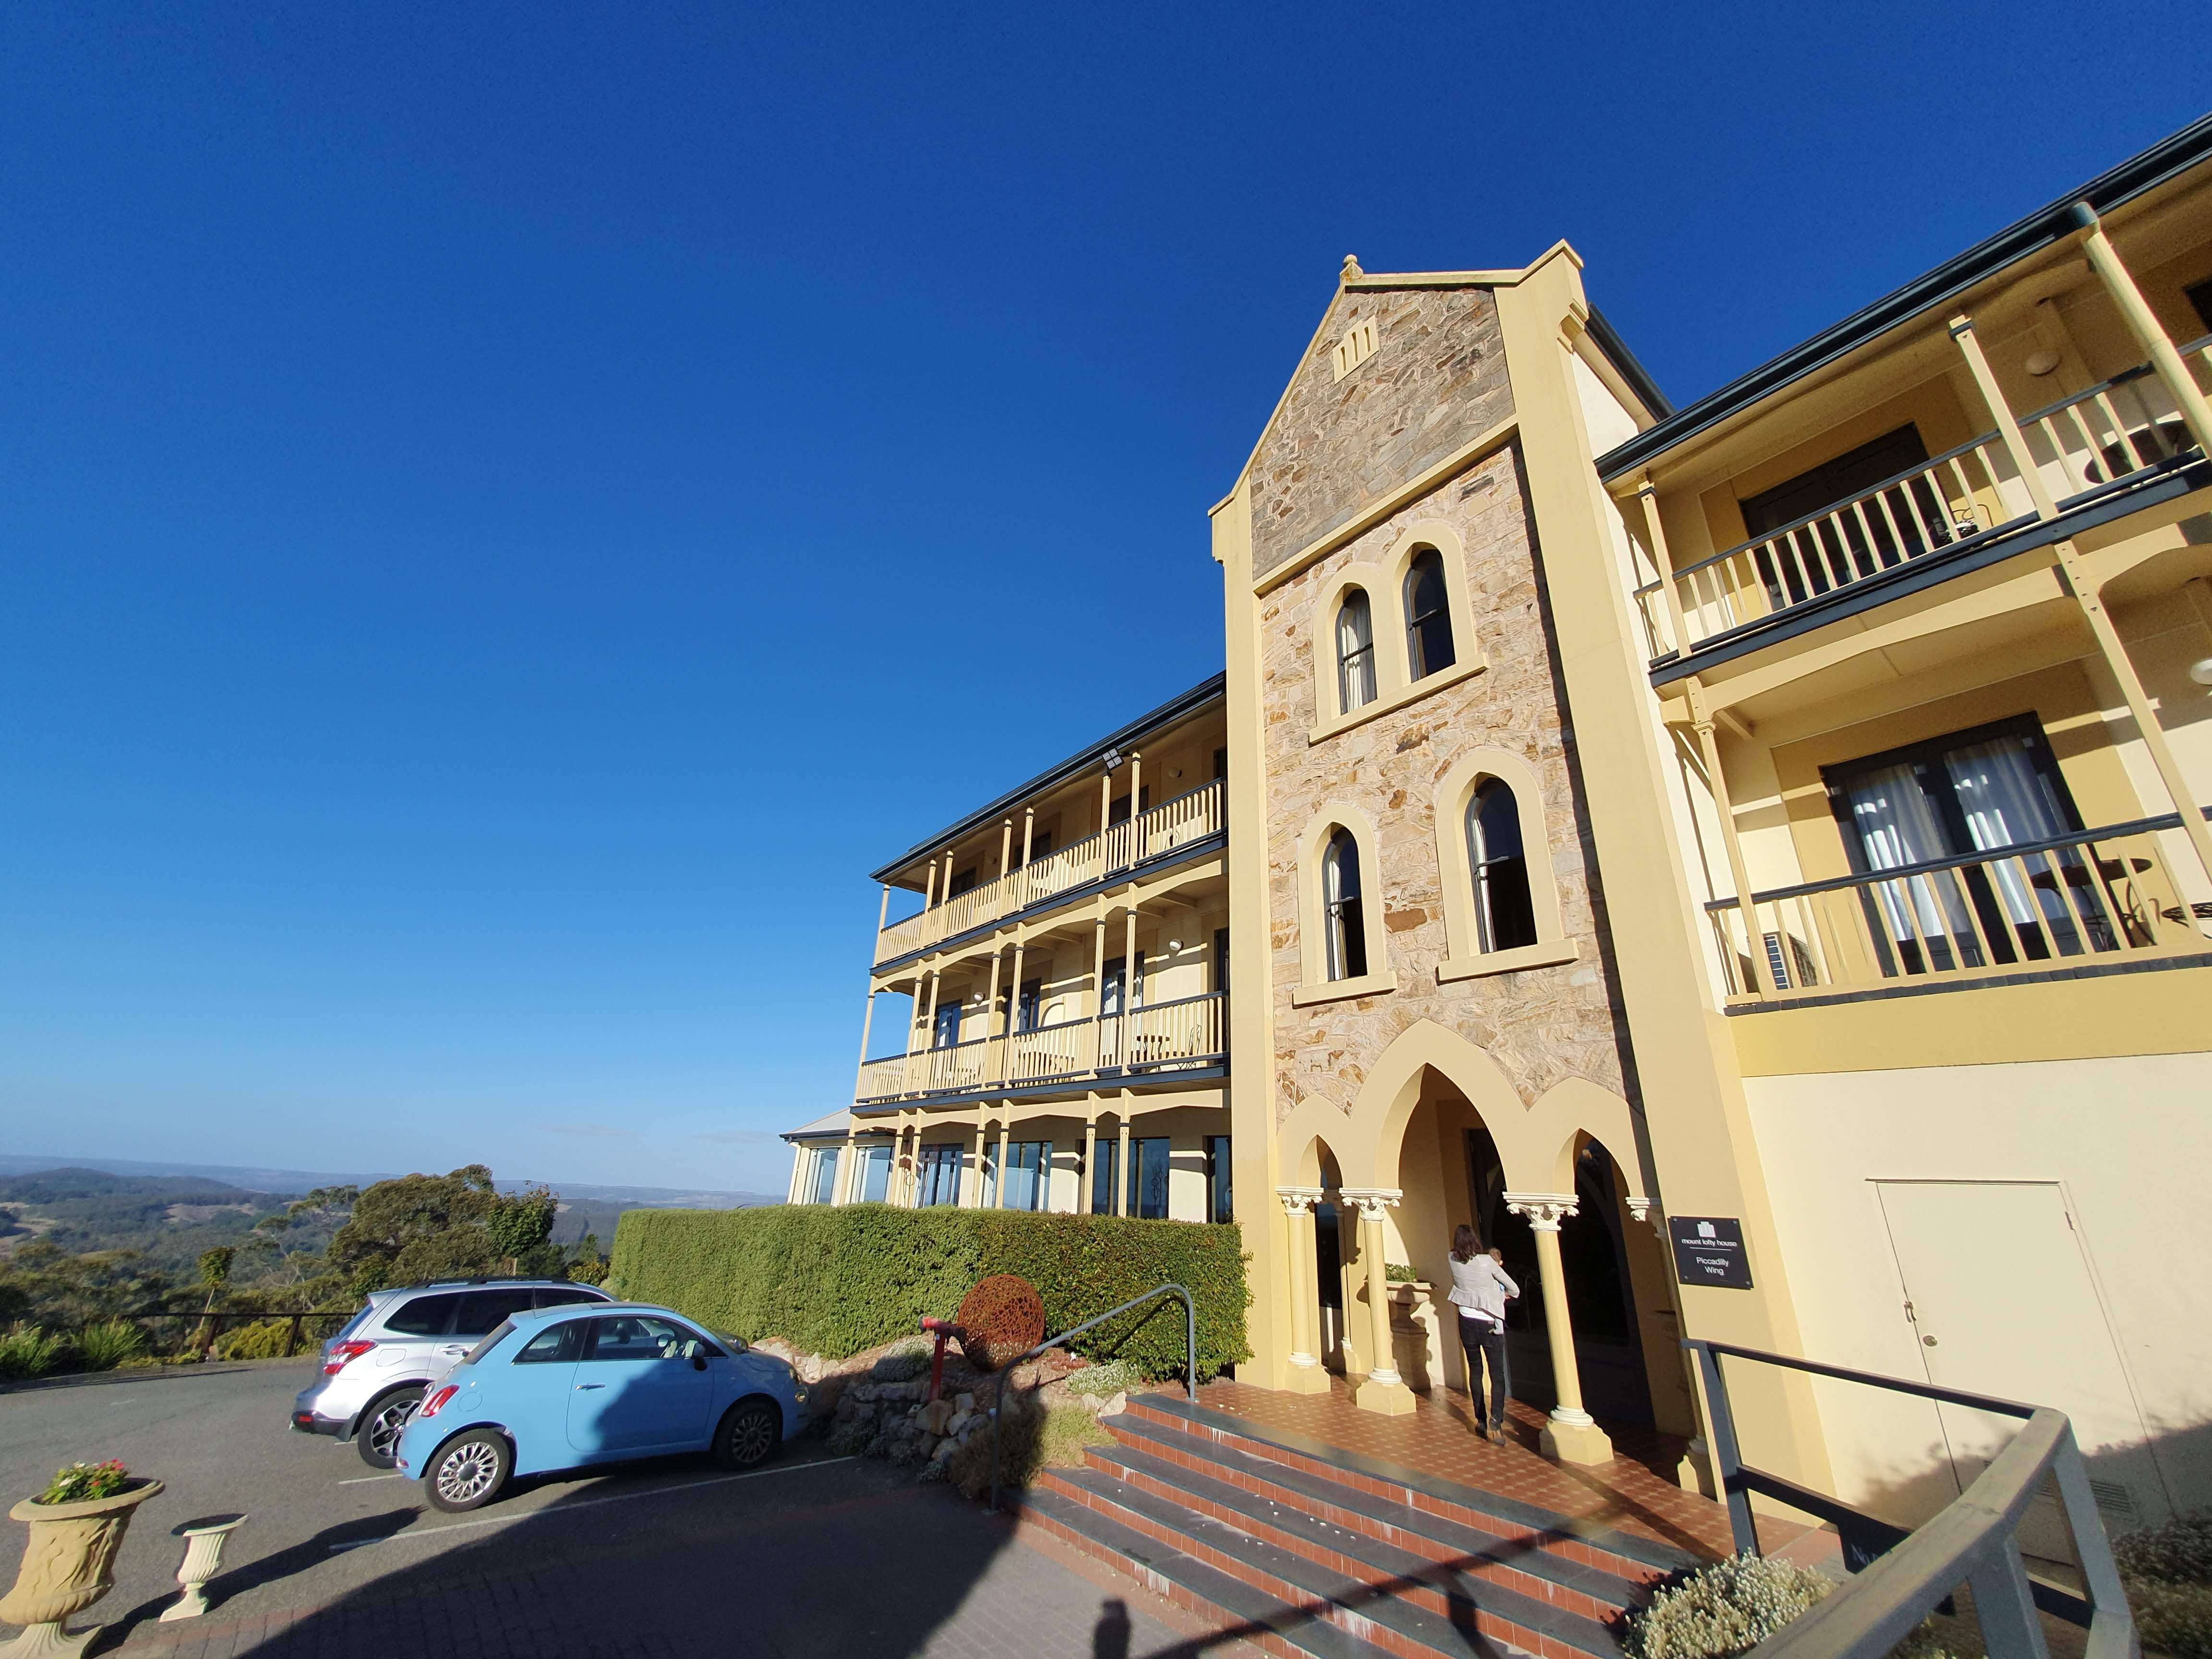 Review: Mount Lofty House, my best stay yet